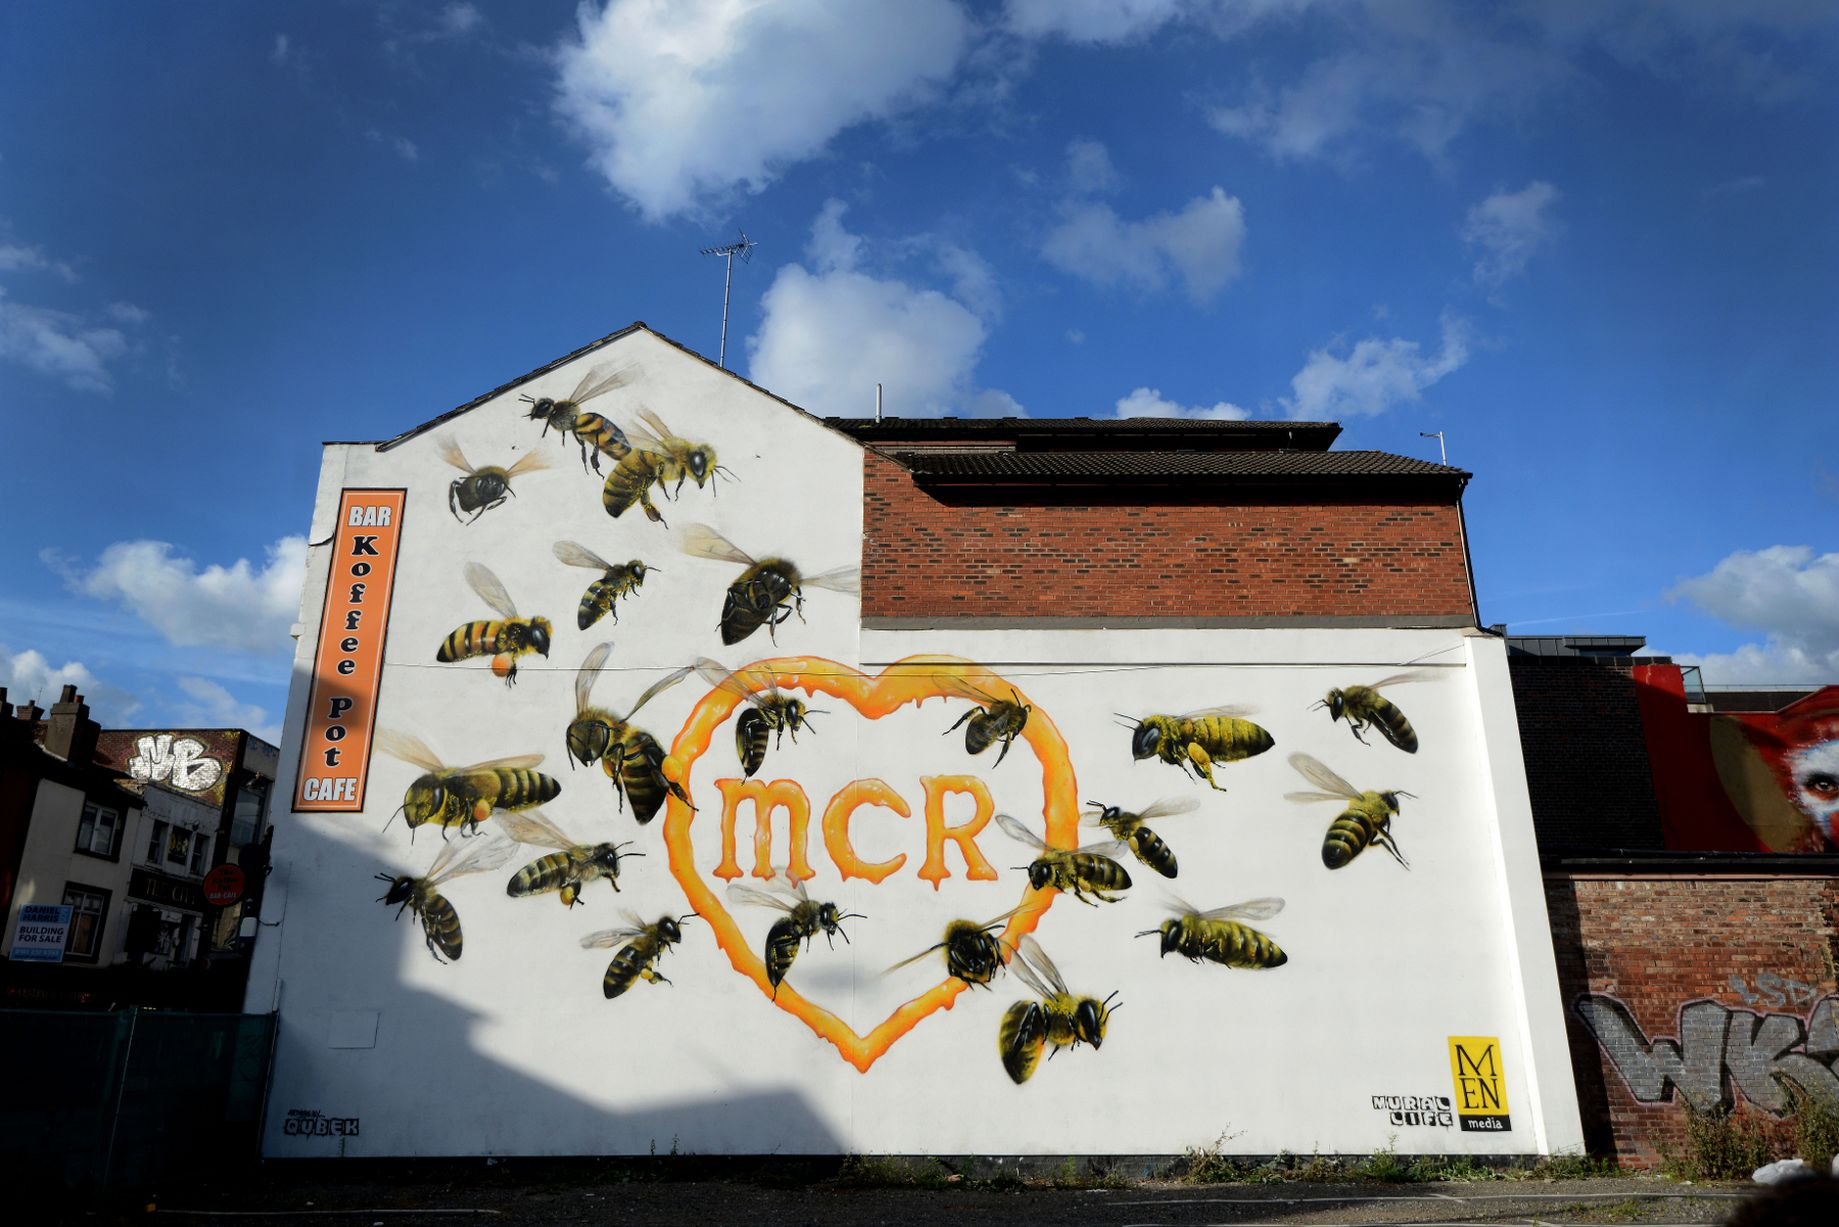 worker bee wall murals prevail through tragedy in manchester bang